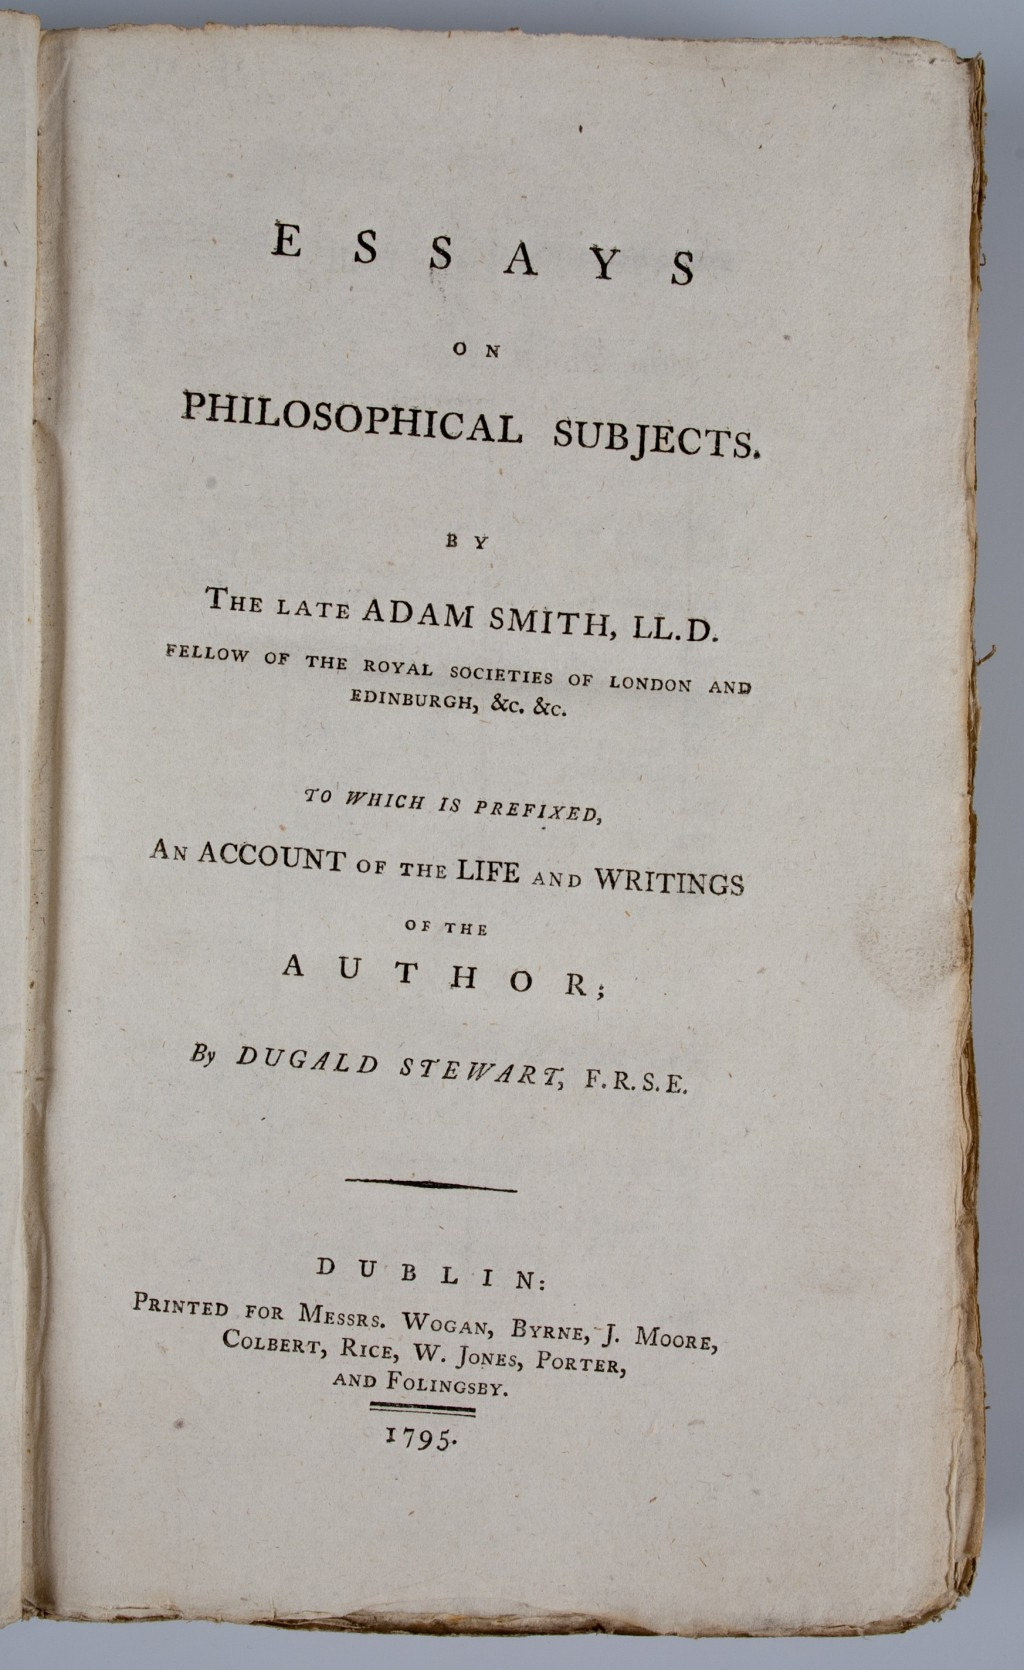 002 Essays On Philosophical Subjects Essay Example 54130 02 Best Summary Adam Smith Large